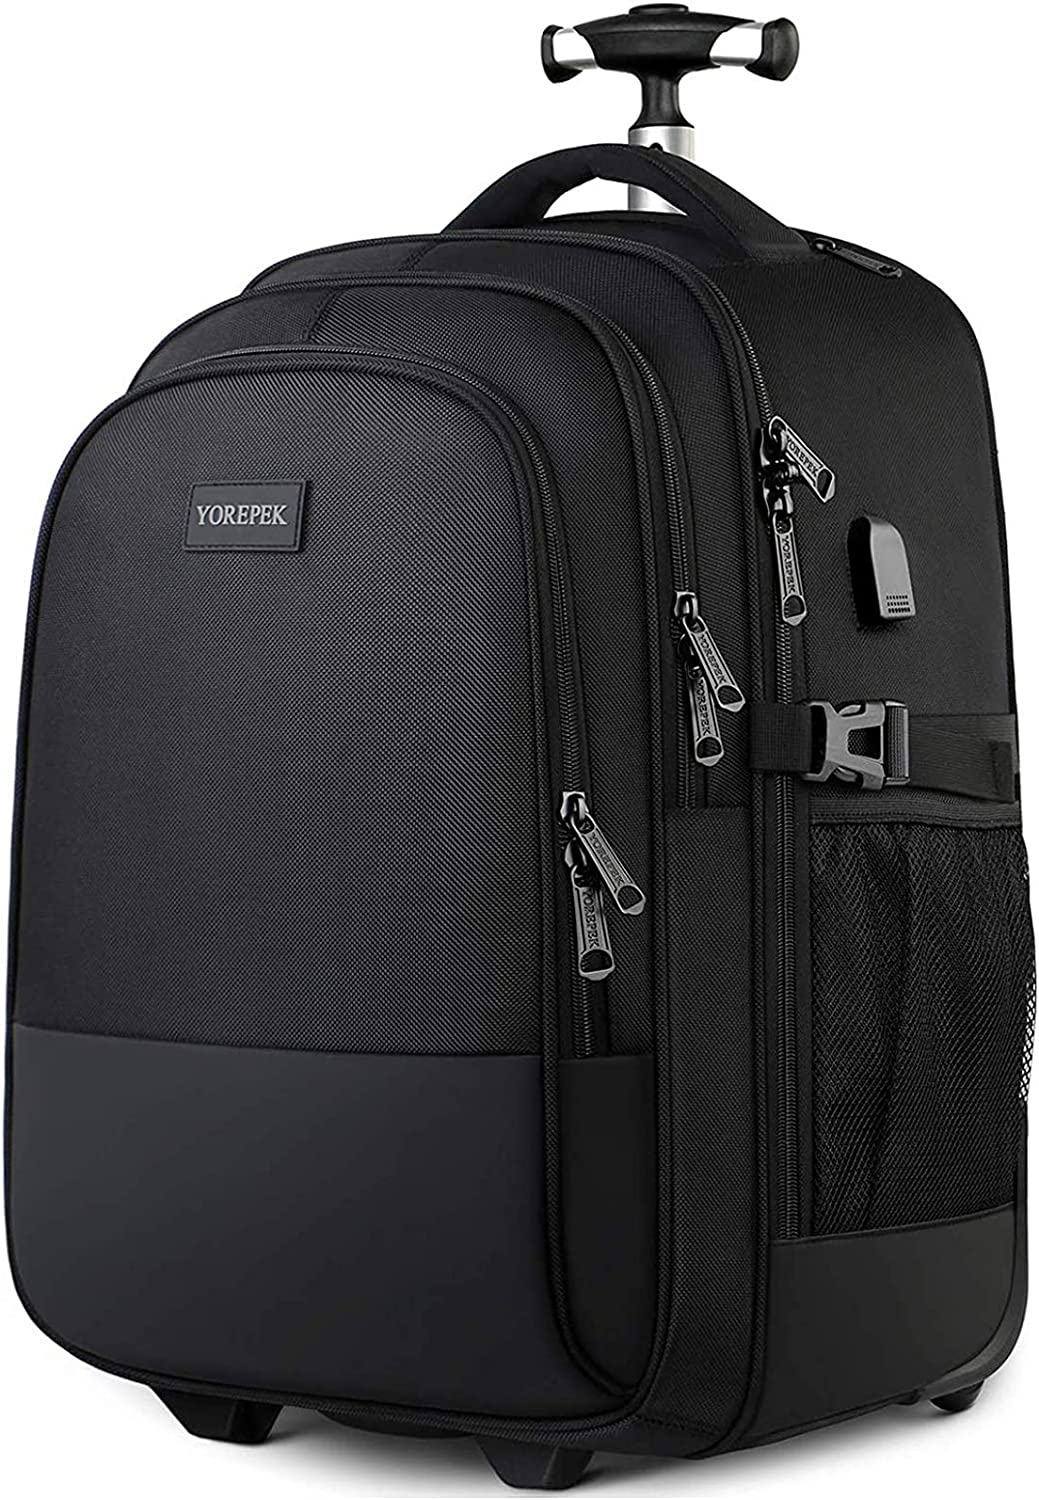 Matein Waterproof Travel Wheeled Laptop Backpack for Women Men Carryon Trolley Luggage Suitcase Compact Business Bag College School Computer Bag fit 15.6 Inch Notebook,Black Rolling Backpack